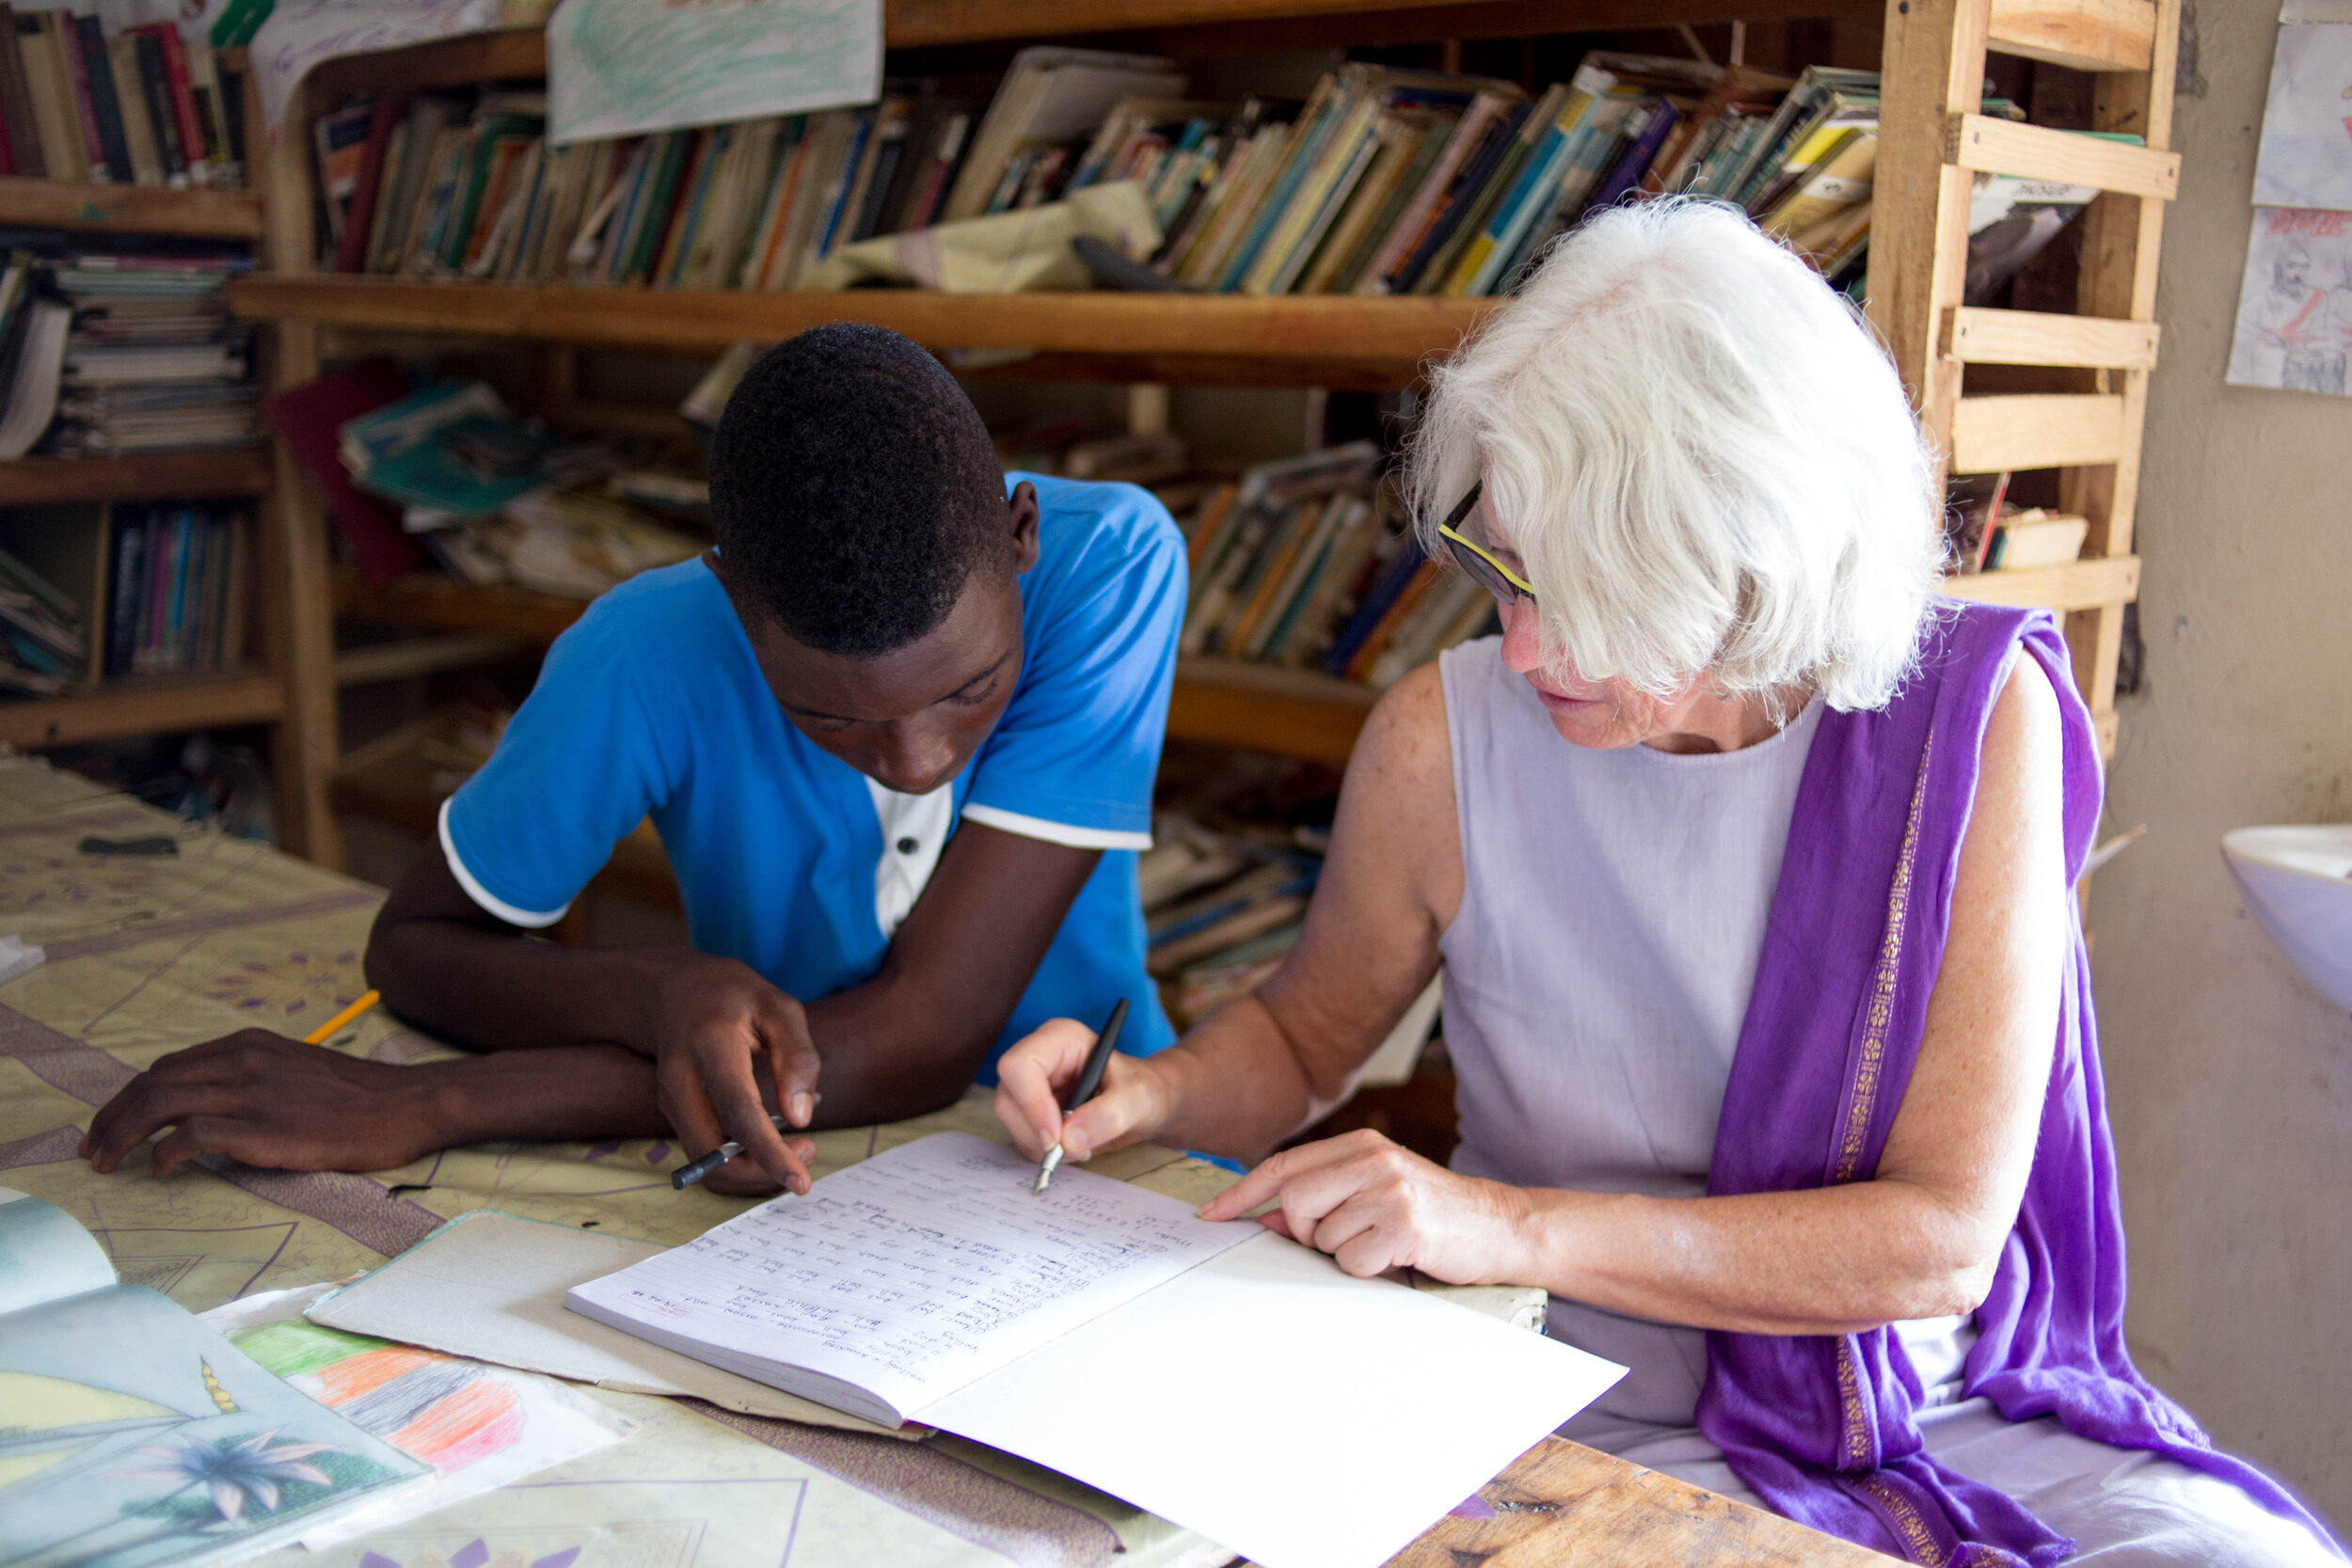 Volunteer Isabelle works one-on-one with a student at the educational resource center.